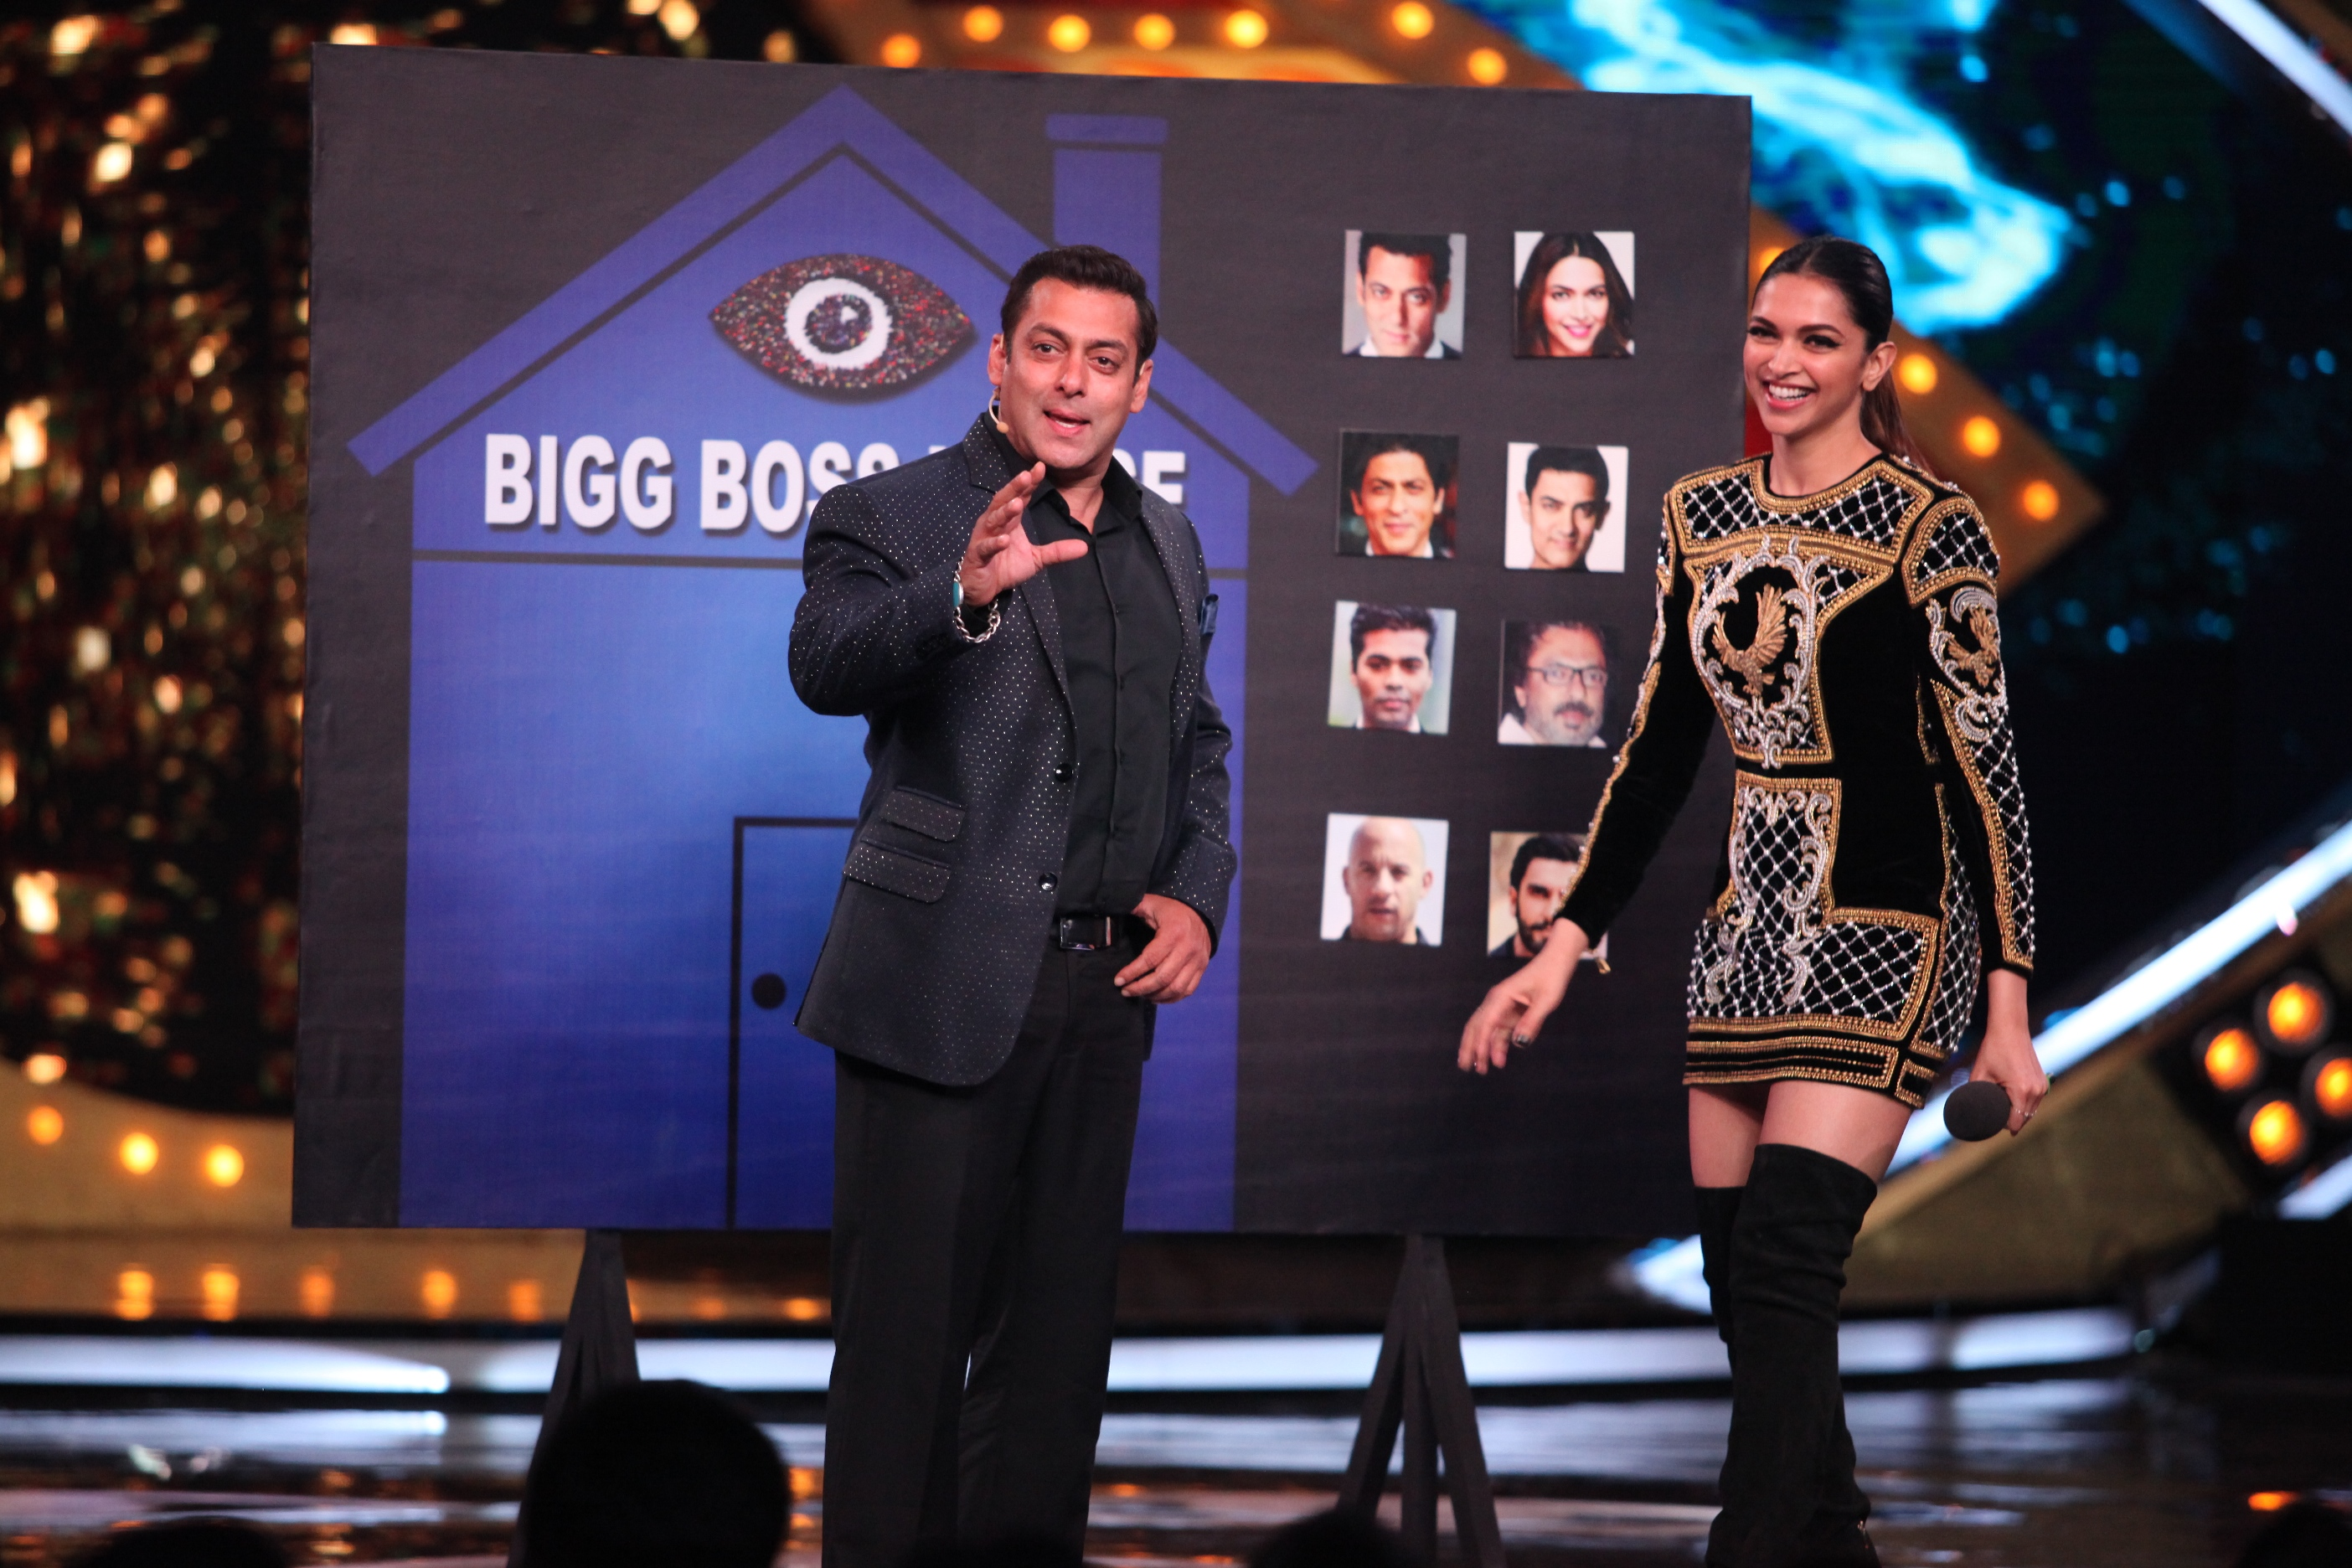 The Bigg Boss House Gets a Royal Touch This Season